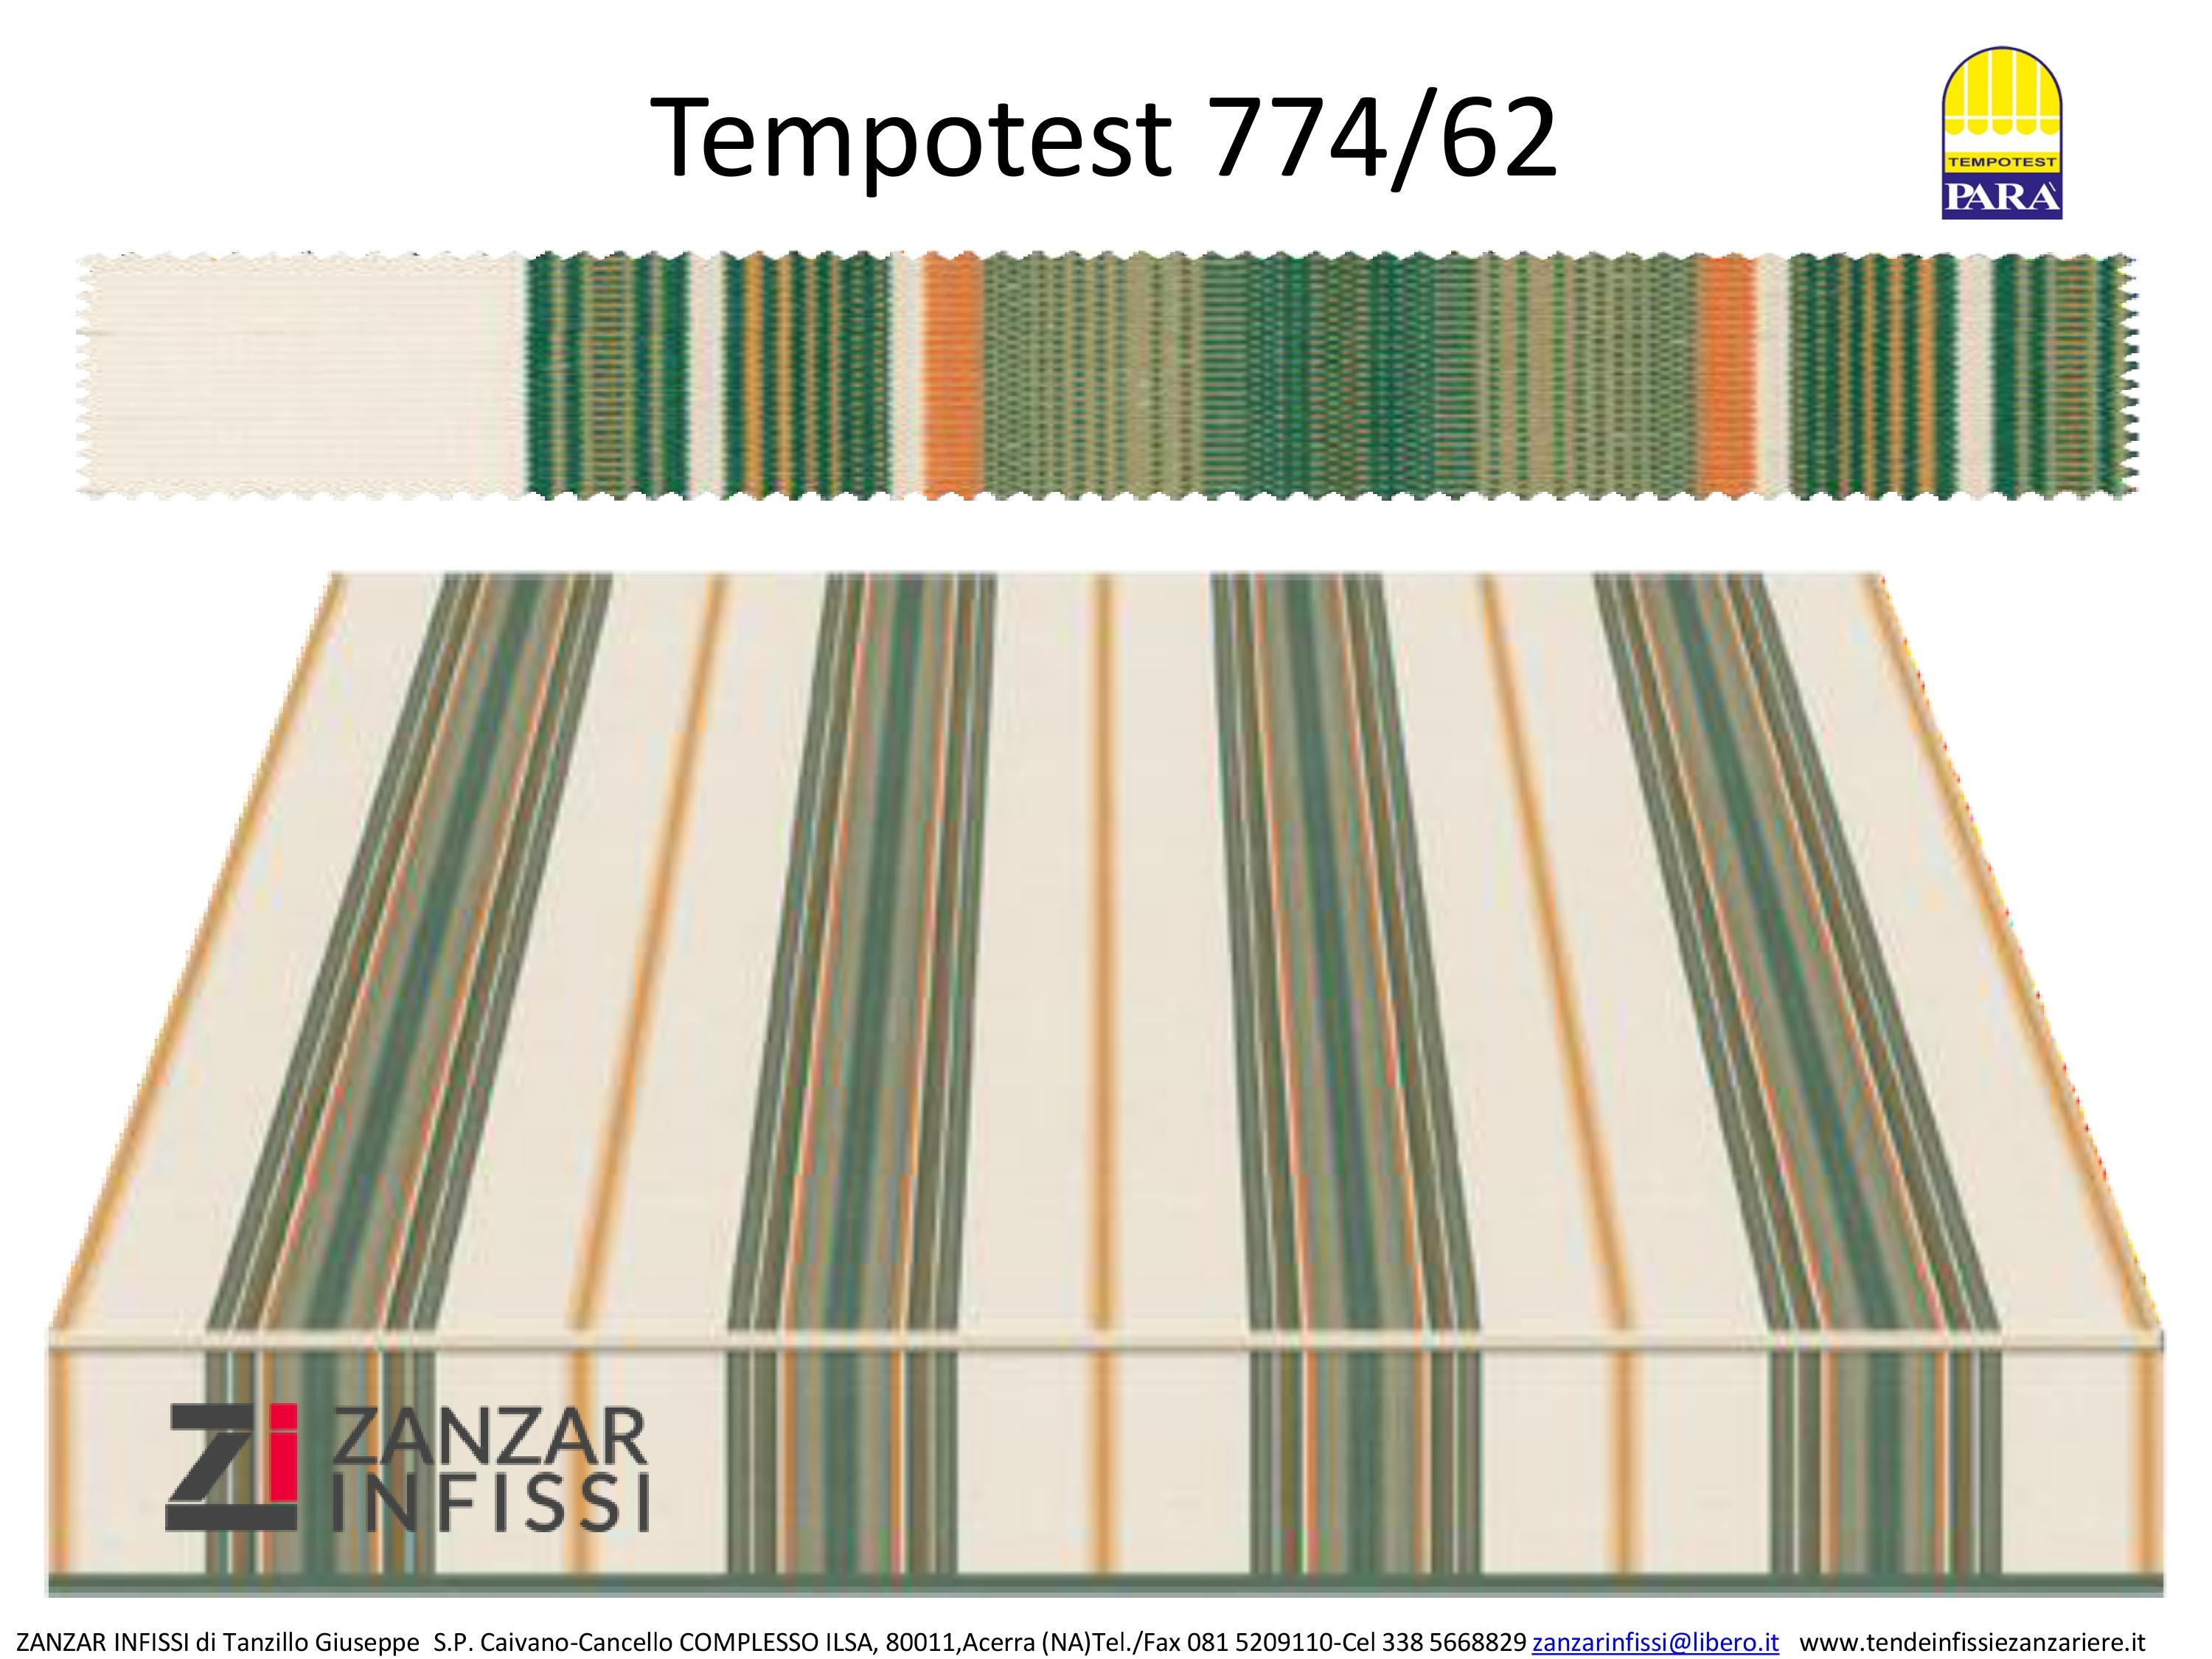 Tempotest 774/62